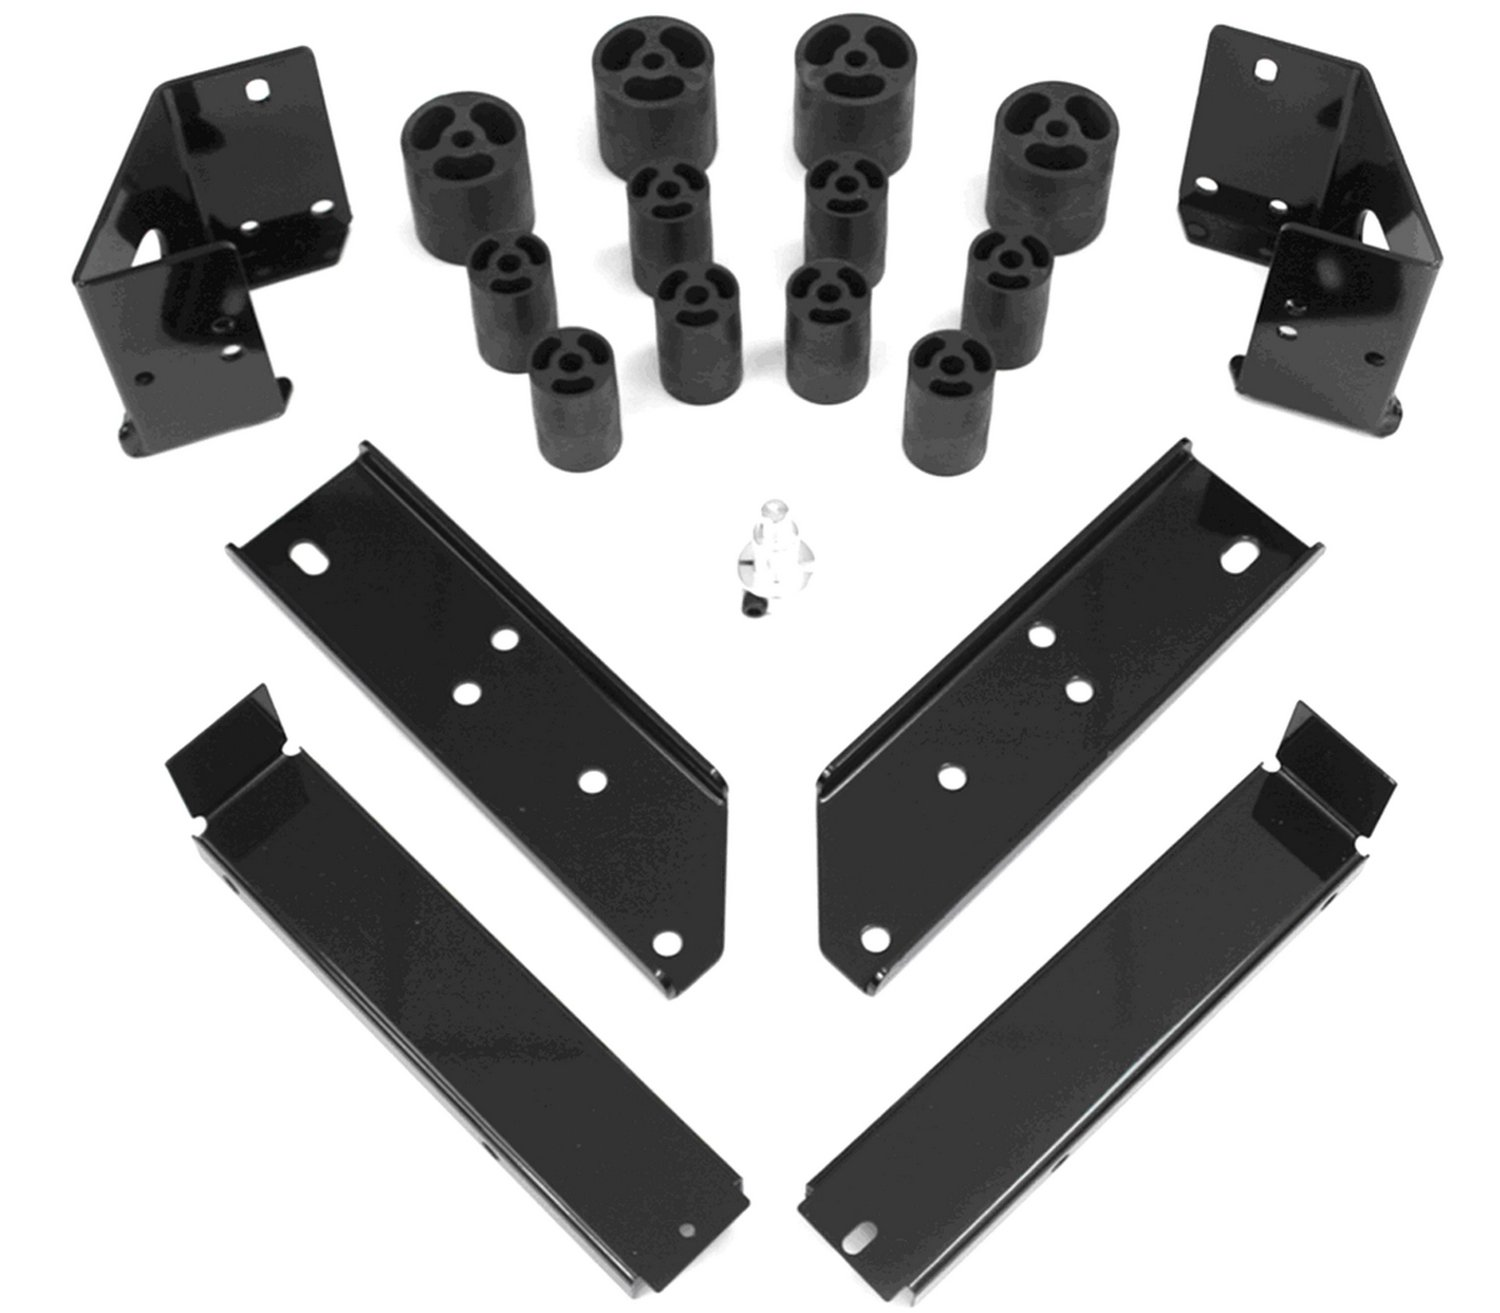 Performance Accessories Body Lift Kit for Toyota Tacoma 5603